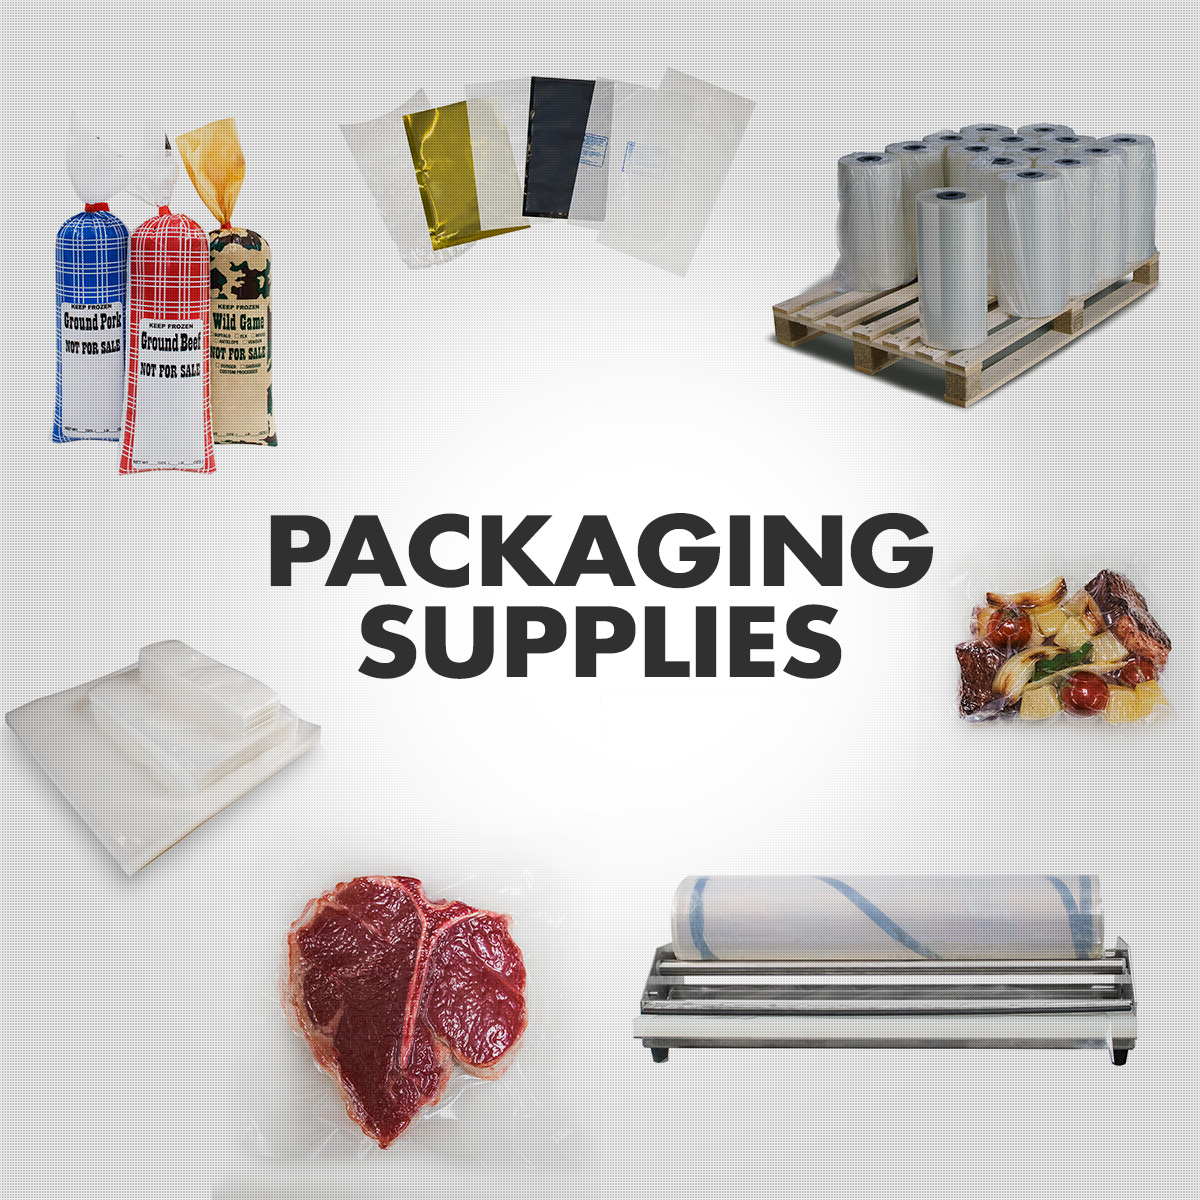 Packaging Supplies - Vacuum Pouches, Shrink Bags, Meat Chub bags, Film Rollstock